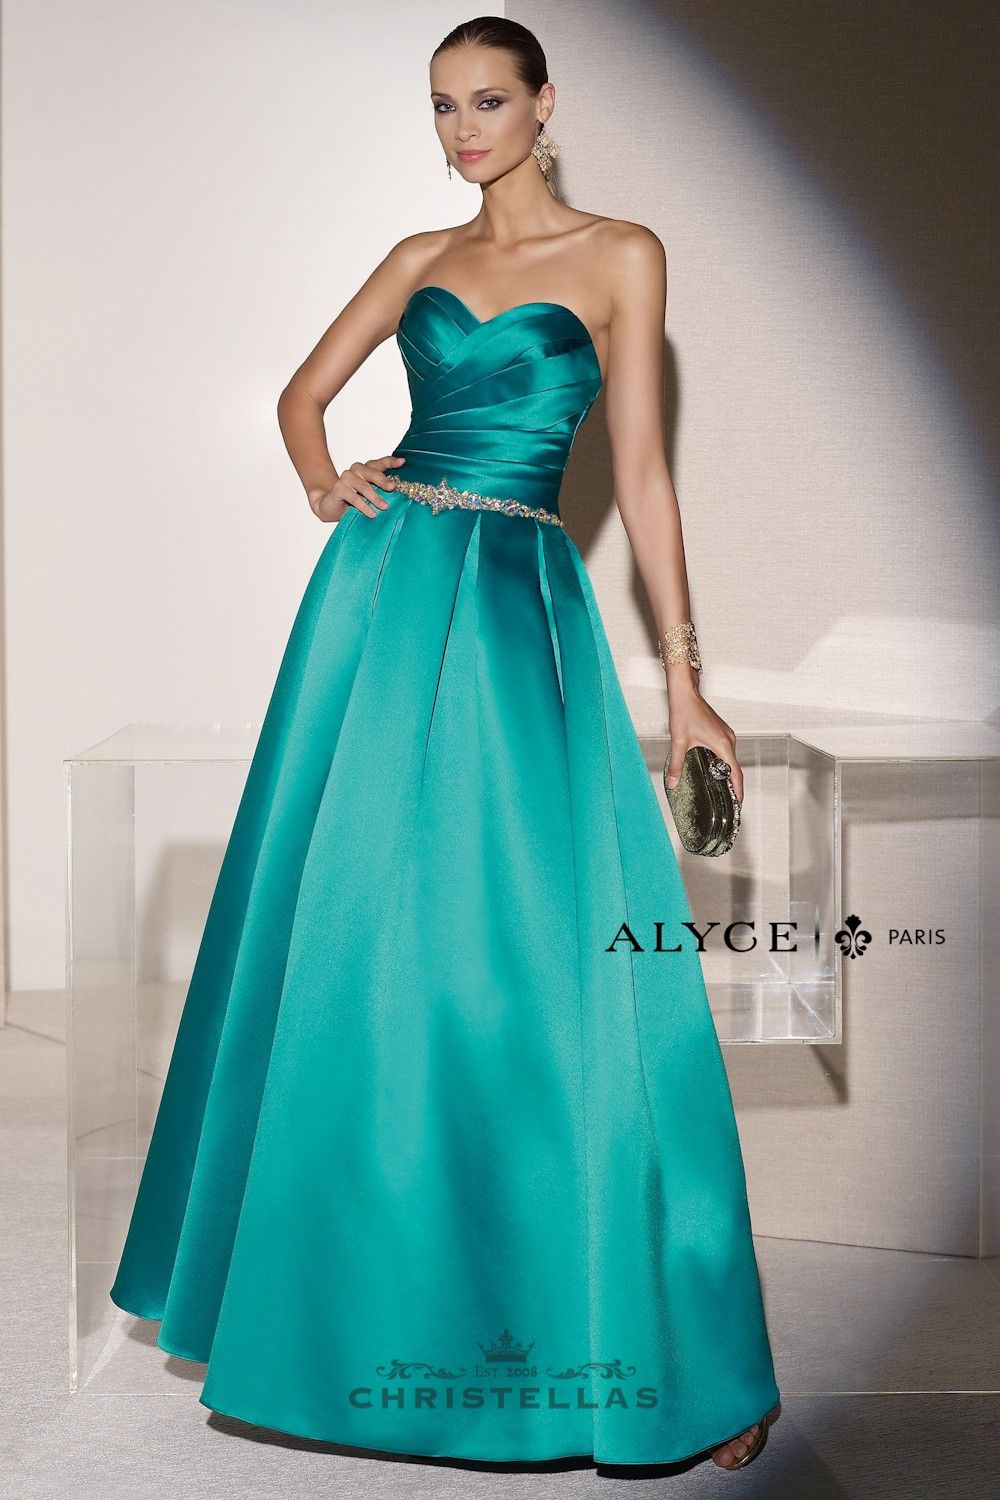 Alyce 5652 Dress Black Label Collection | Julias sweet 16 ...